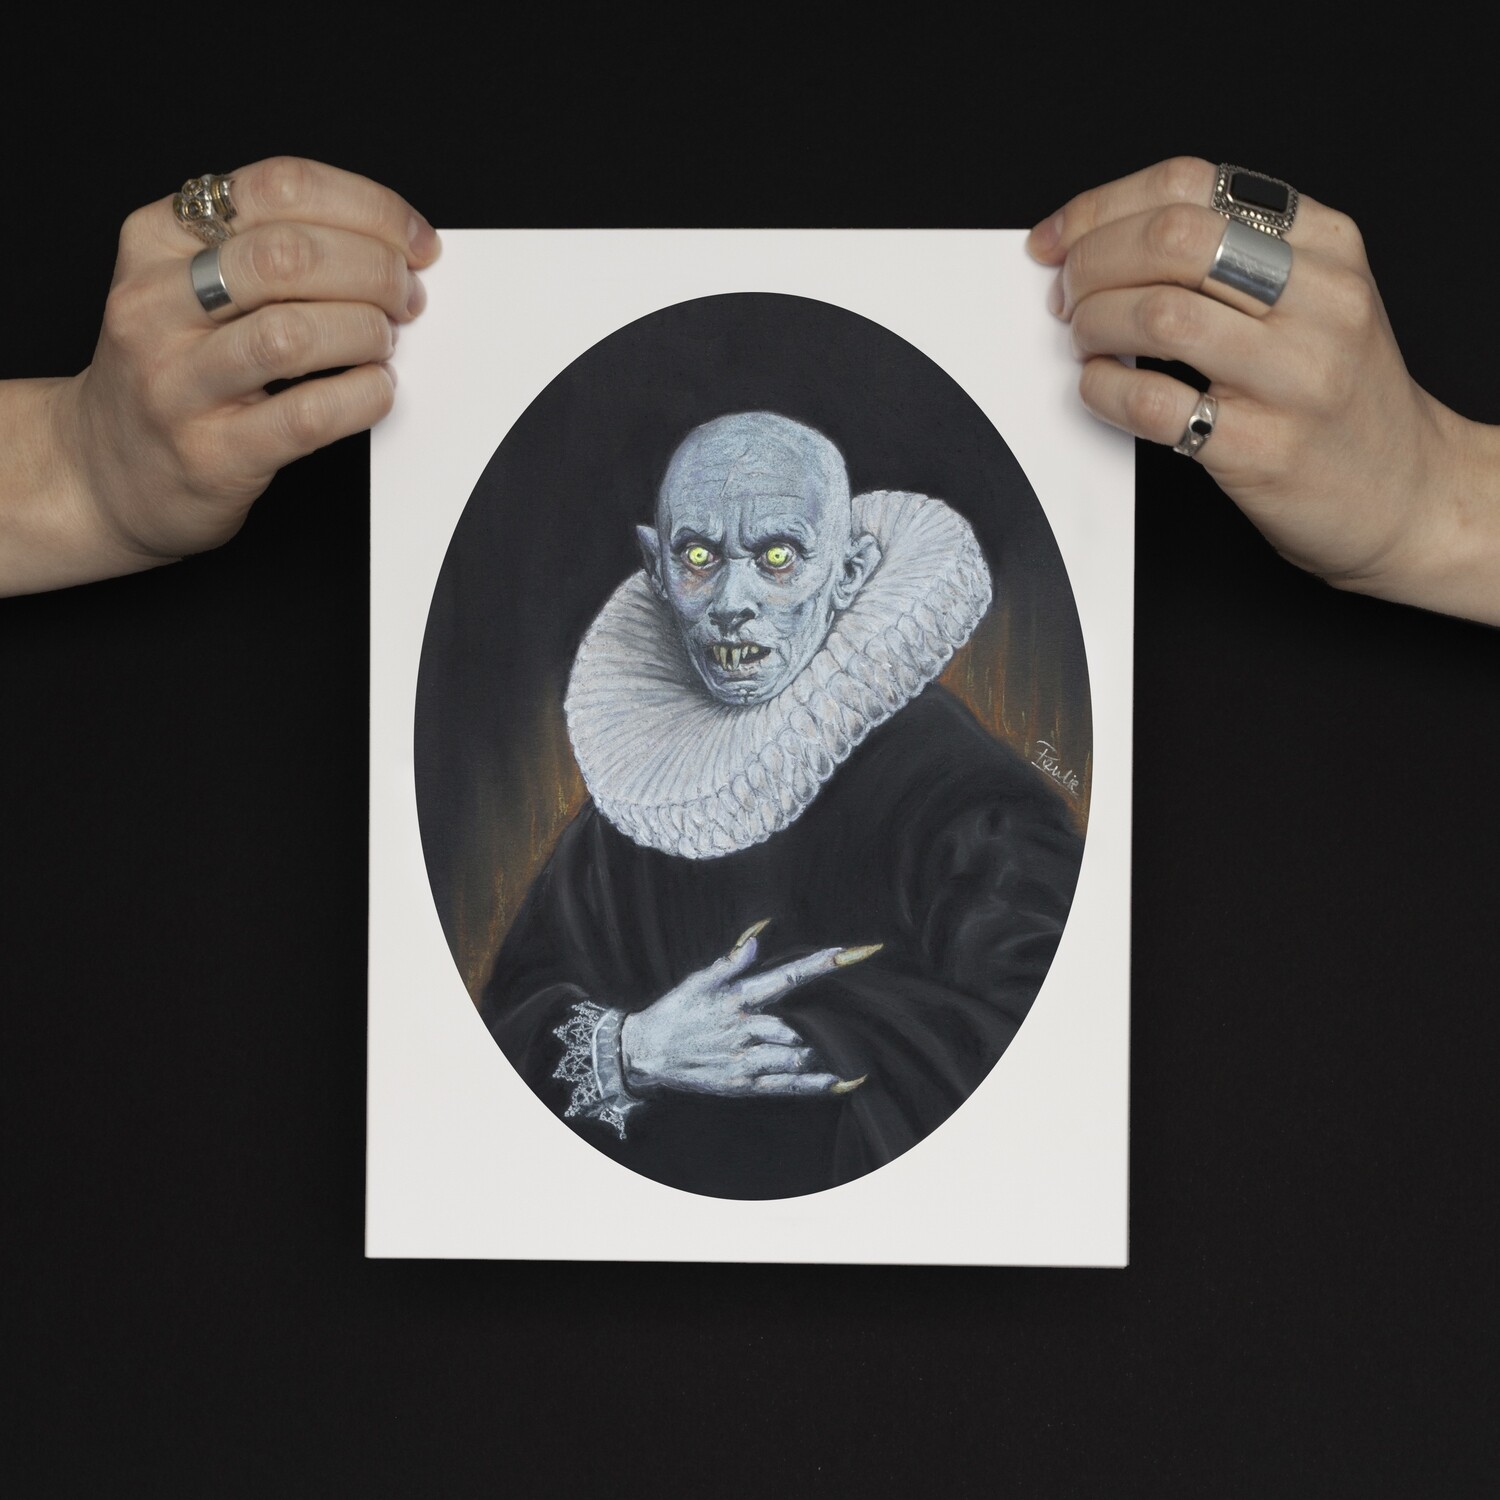 LIMITED EDITION VAMPYRE THEMED GICLEE PRINTS